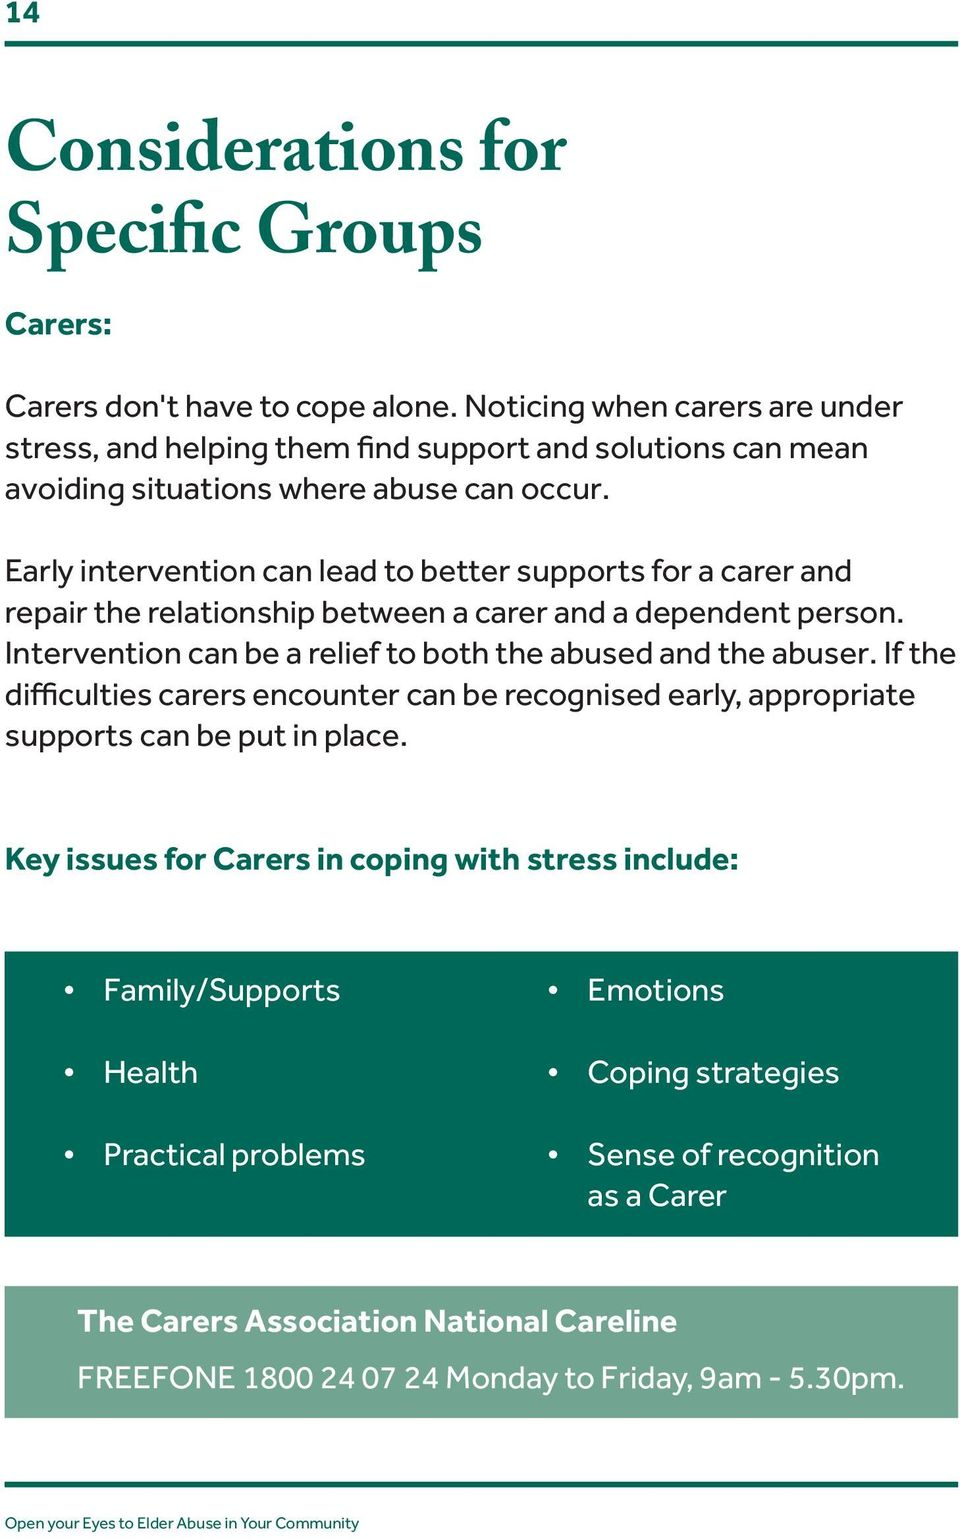 Early intervention can lead to better supports for a carer and repair the relationship between a carer and a dependent person. Intervention can be a relief to both the abused and the abuser.